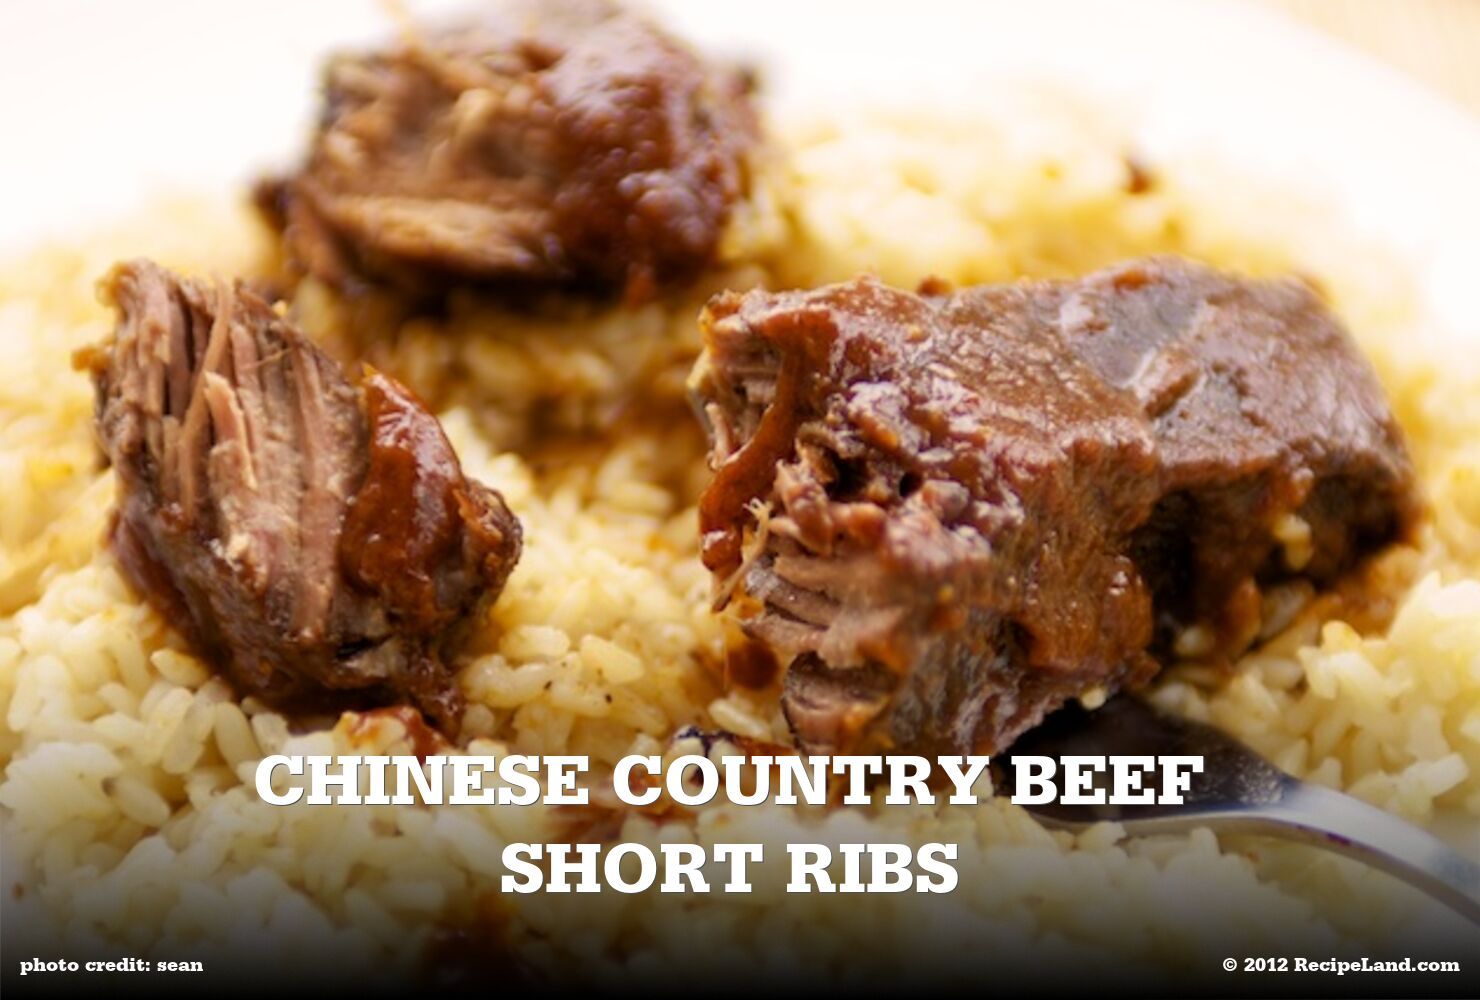 Chinese Country Beef Short Ribs